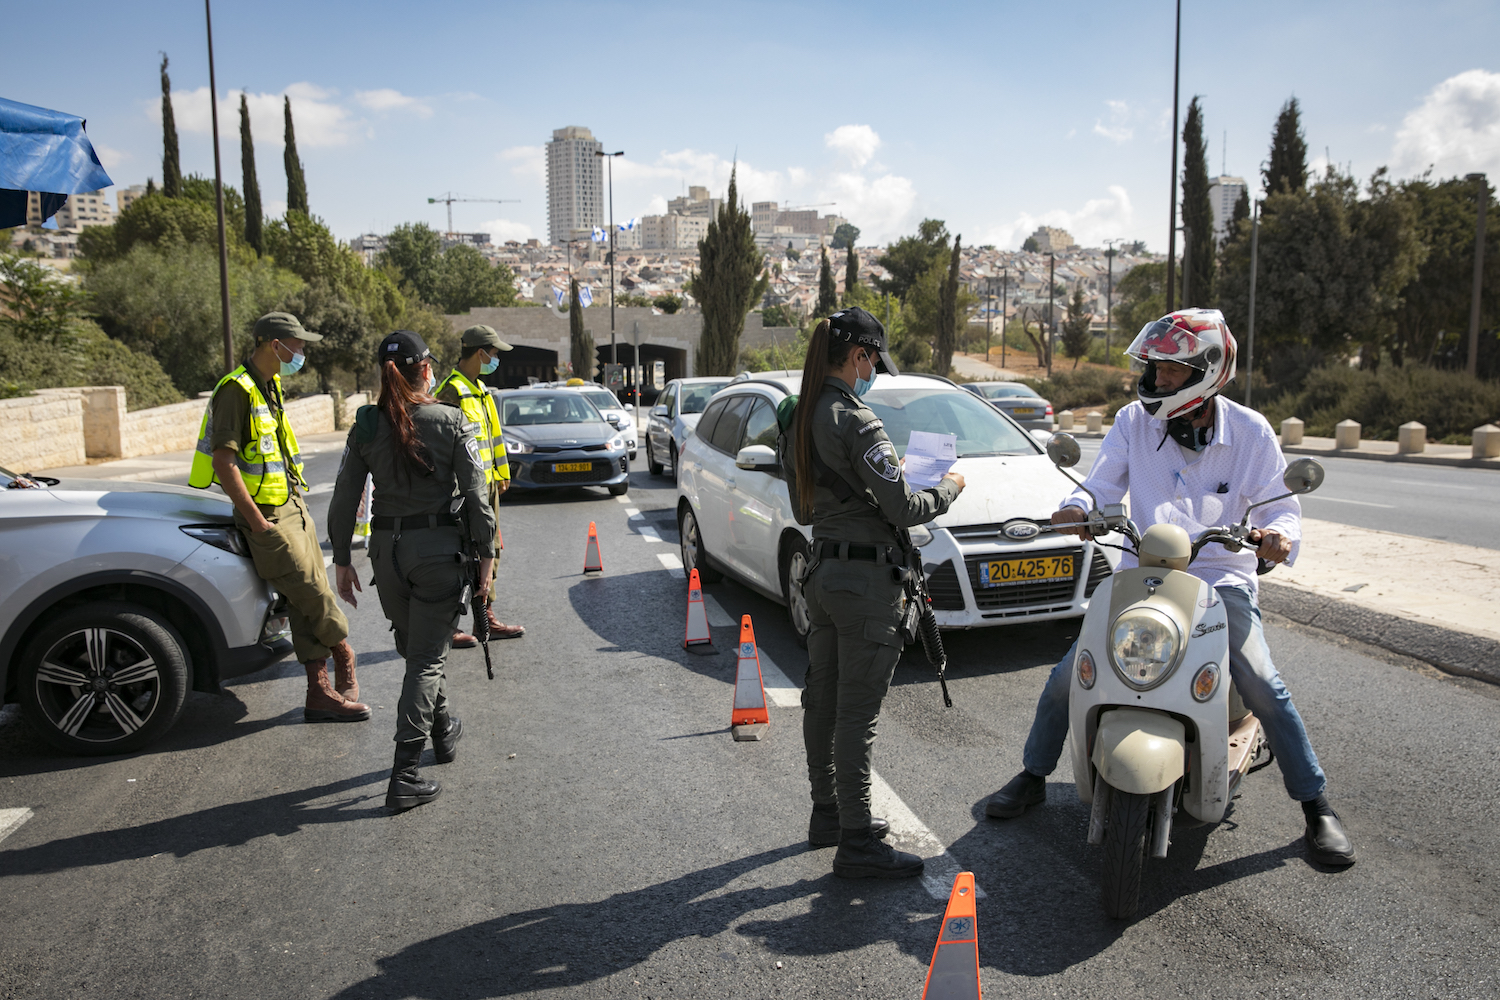 Israeli police and soldiers at a makeshift checkpoint in Jerusalem, September 24, 2020. (Olivier Fitoussi/Flash90)